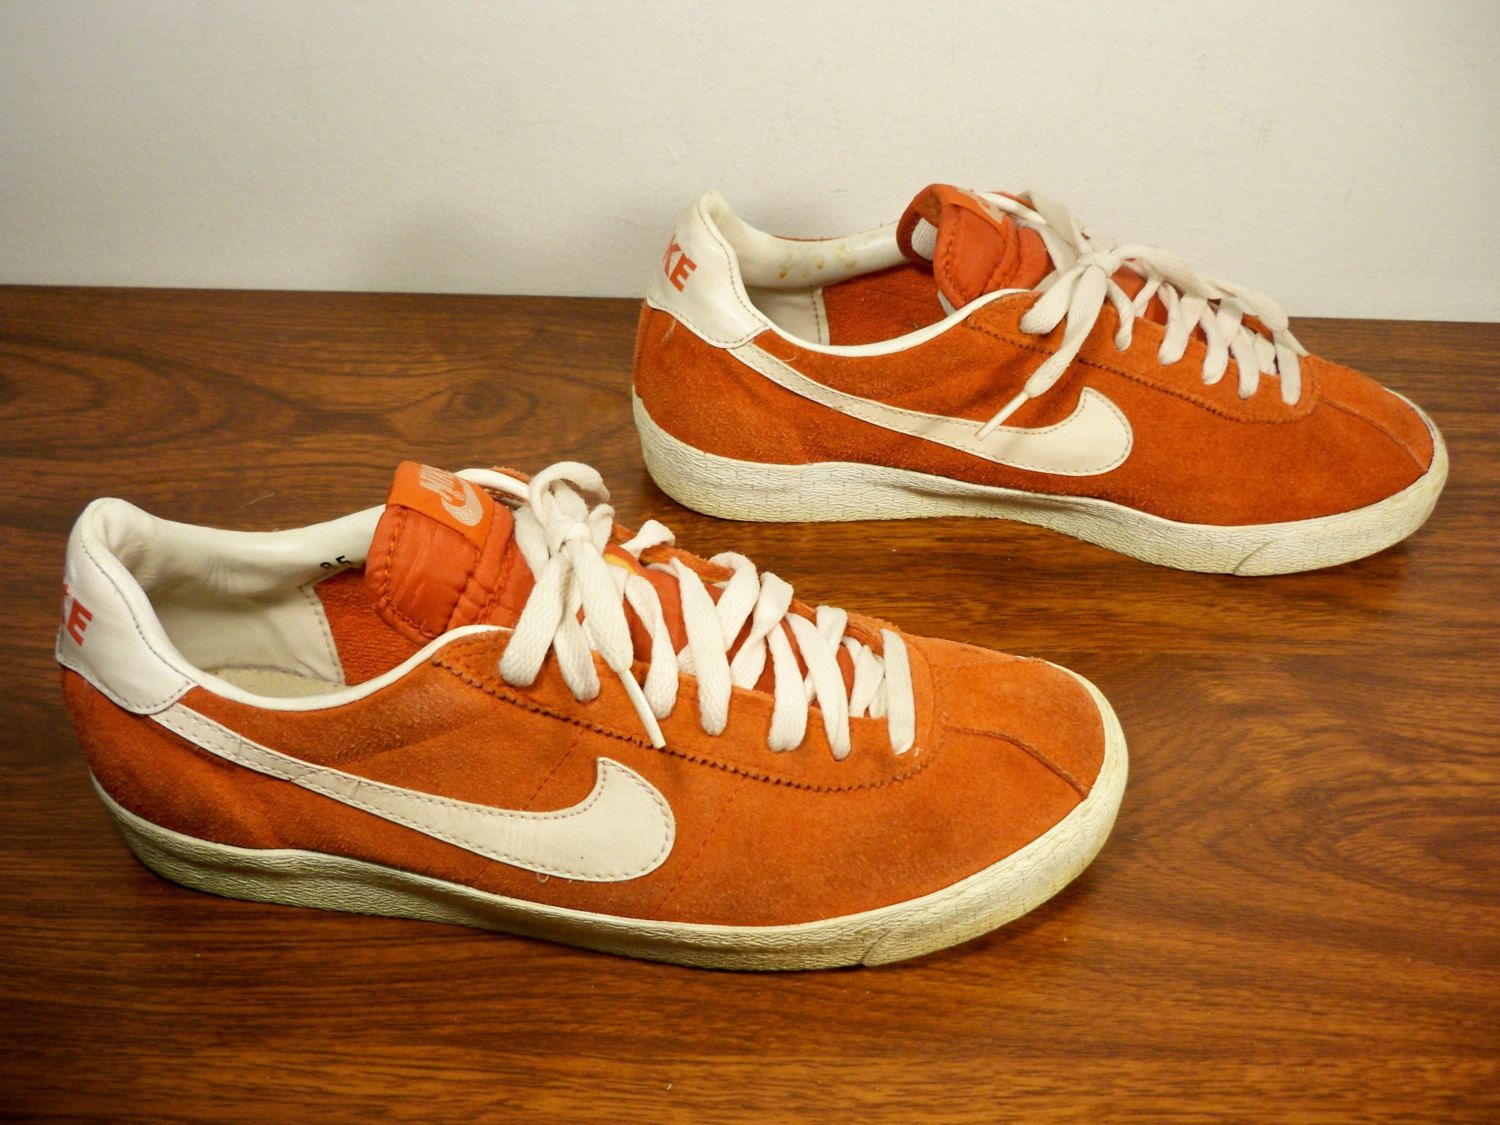 Vintage 1994 '90s Nike Bruin Red Suede Leather Men's Hipster Skater  Skateboarding Sneaker Tennis Shoes